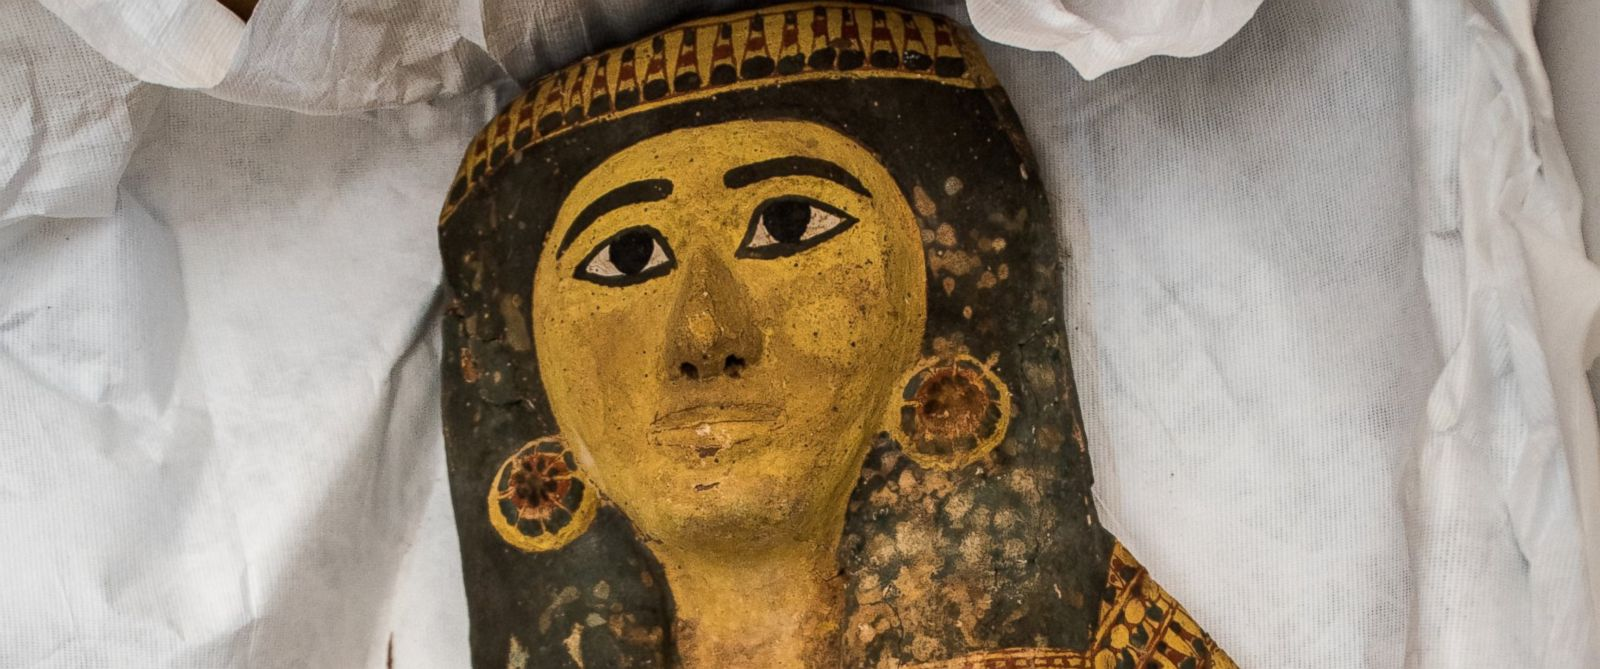 PHOTO: One of a series of illegally smuggled ancient artifacts repatriated to the government of Egypt at a ceremony December 1, 2016 at the Egyptian Embassy in Washington.